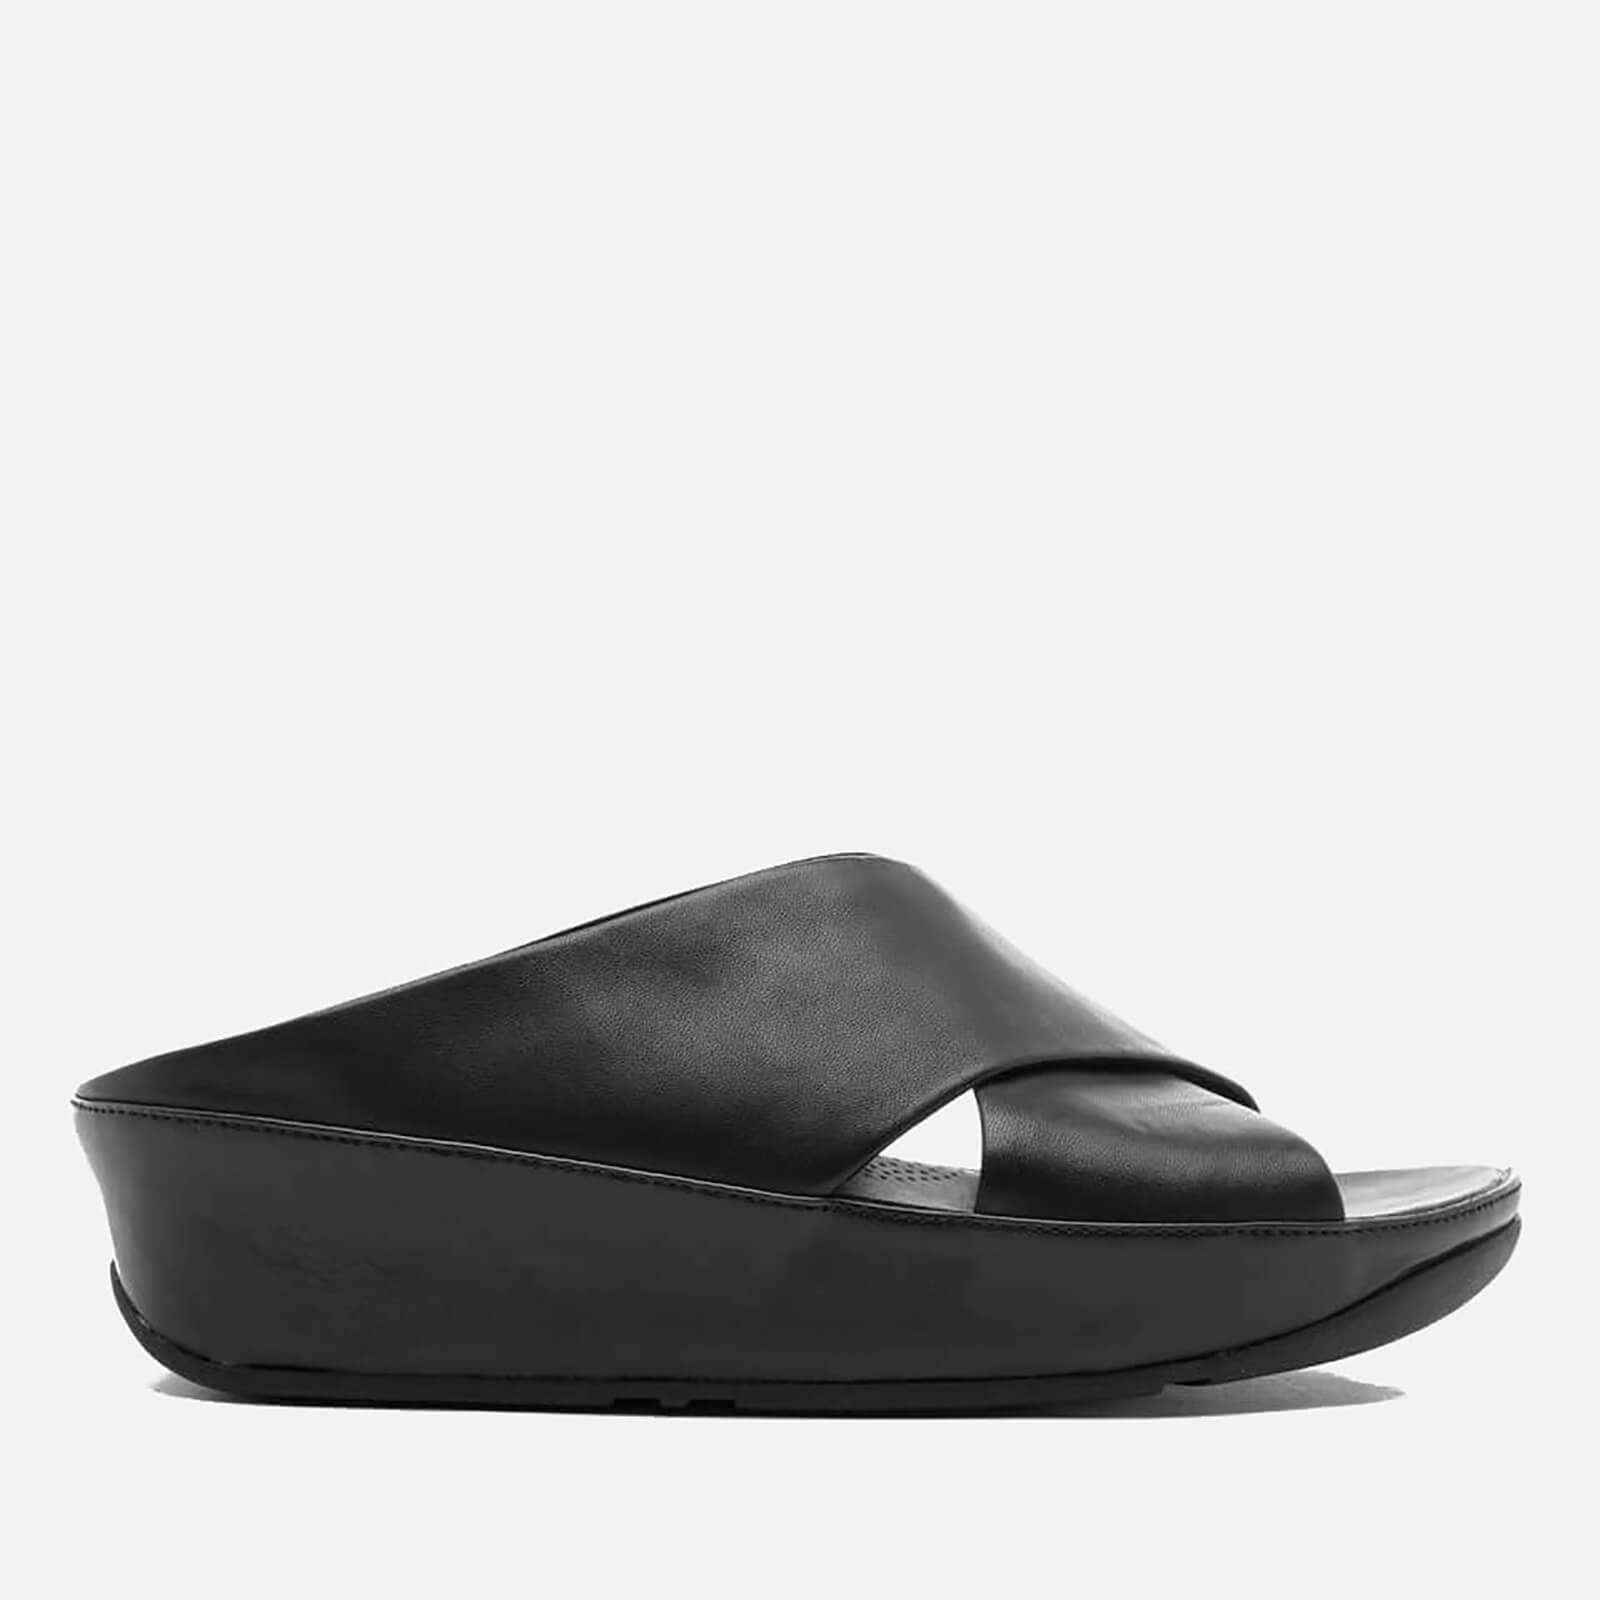 d92ea52d6aacfa FitFlop Women s Kys Leather Slide Sandals - All Black Womens Accessories